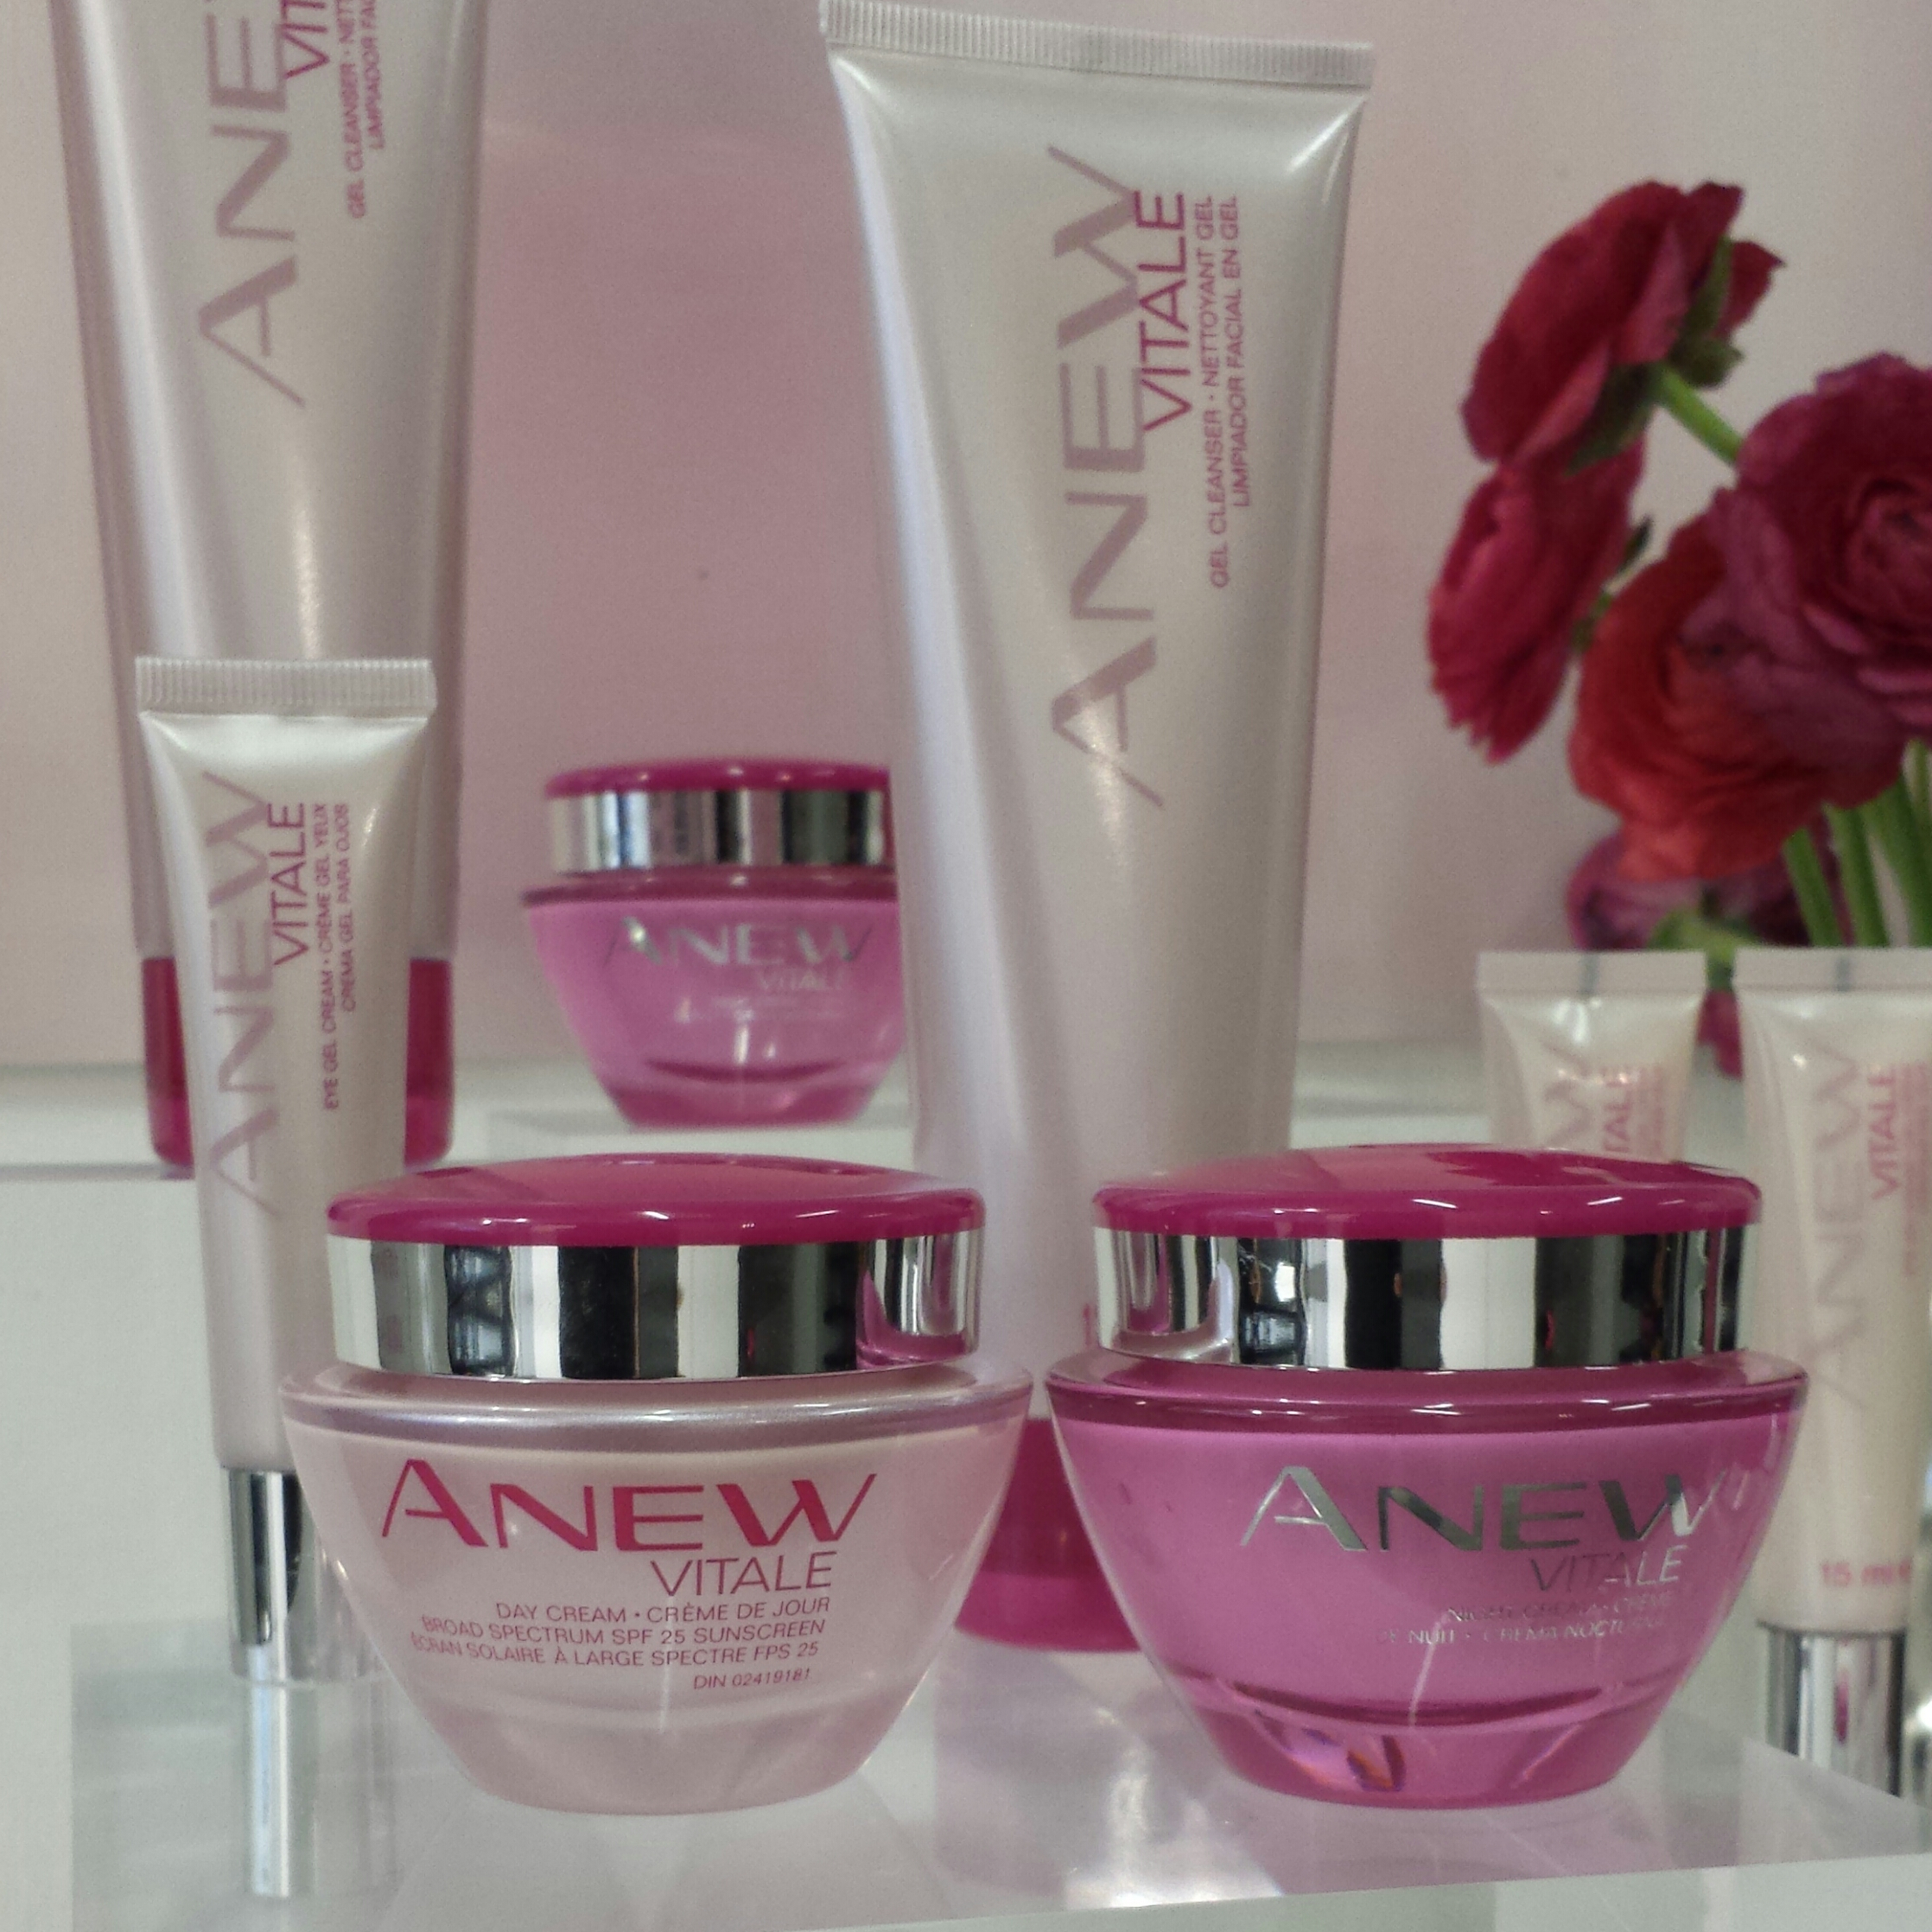 ThisThatBeauty Reviews: Avon ANEW Vitale